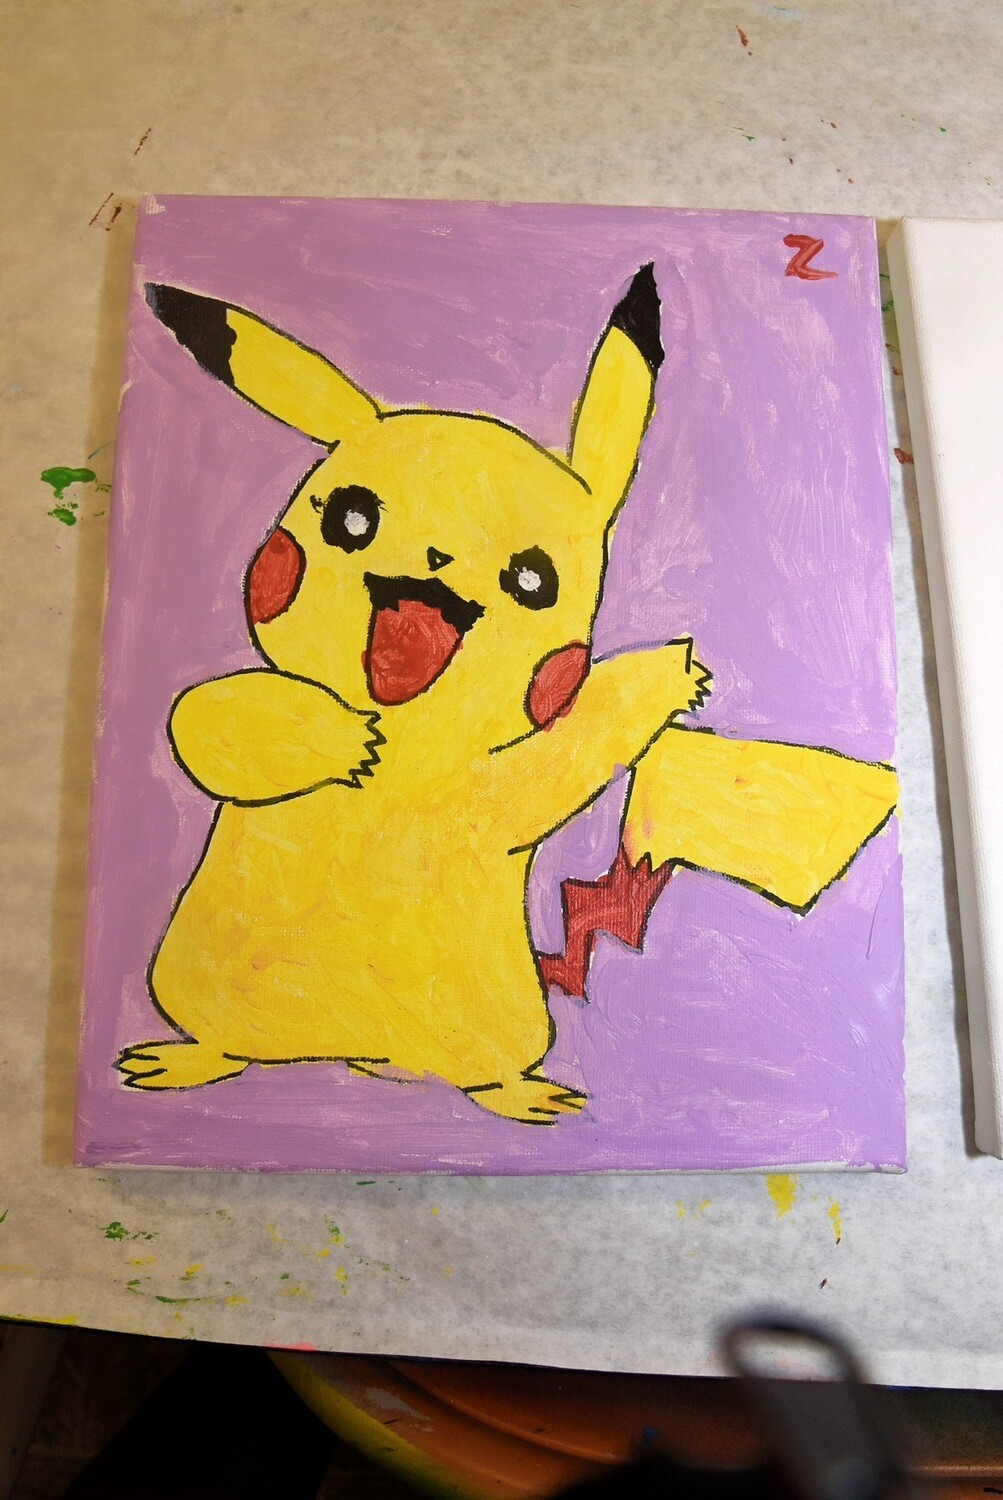 Pikachu Pokemon pre-traced canvas